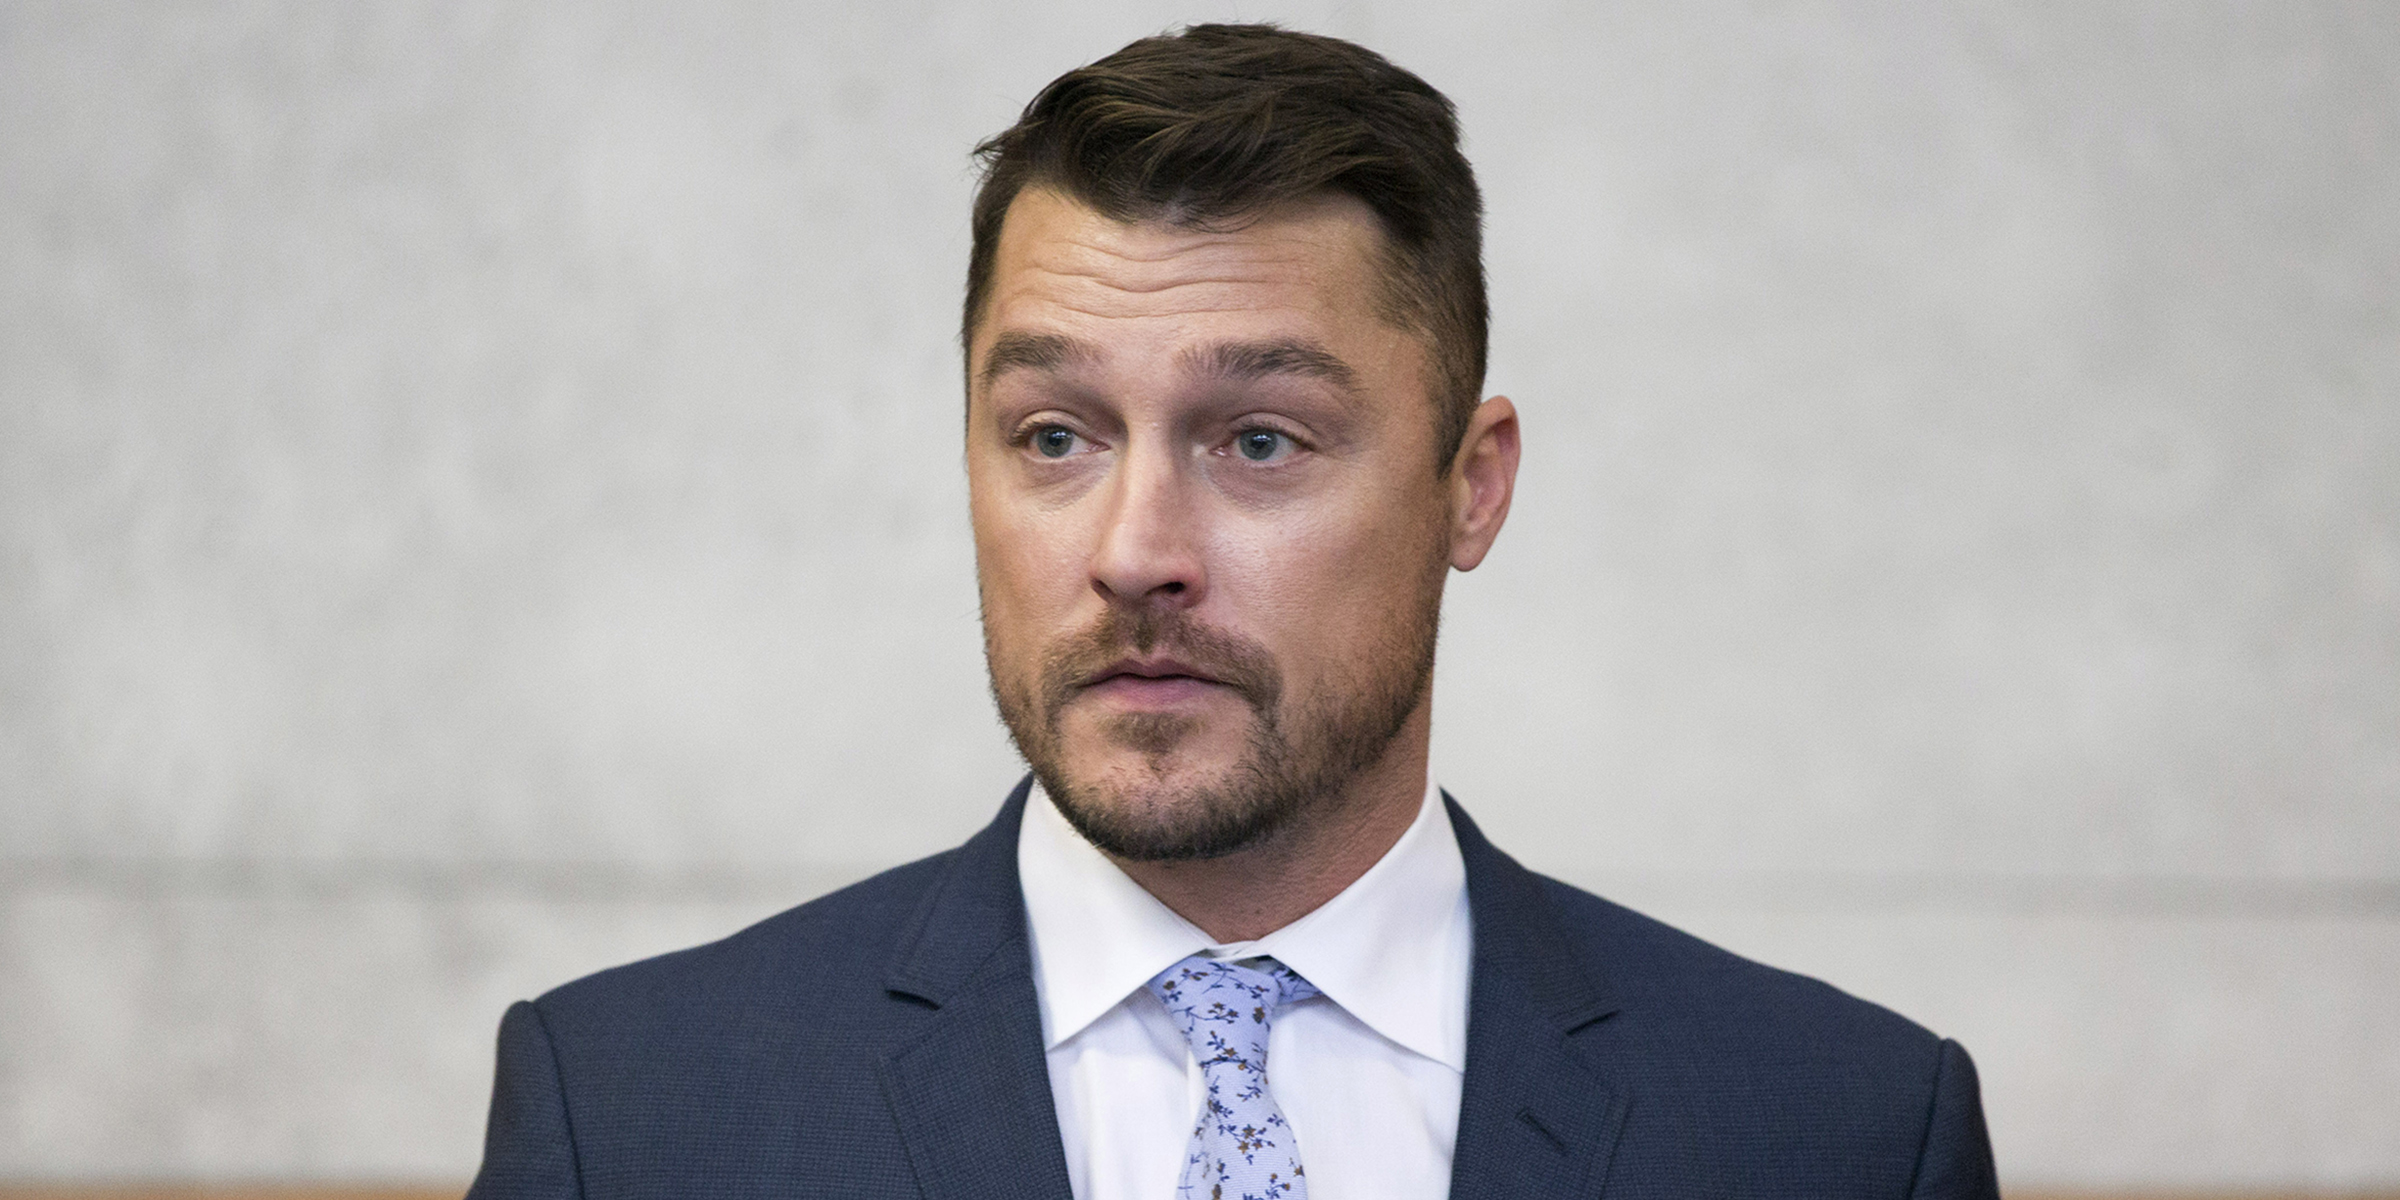 Former 'Bachelor' Chris Soules says he thinks about 2017 fatal crash 'every day'